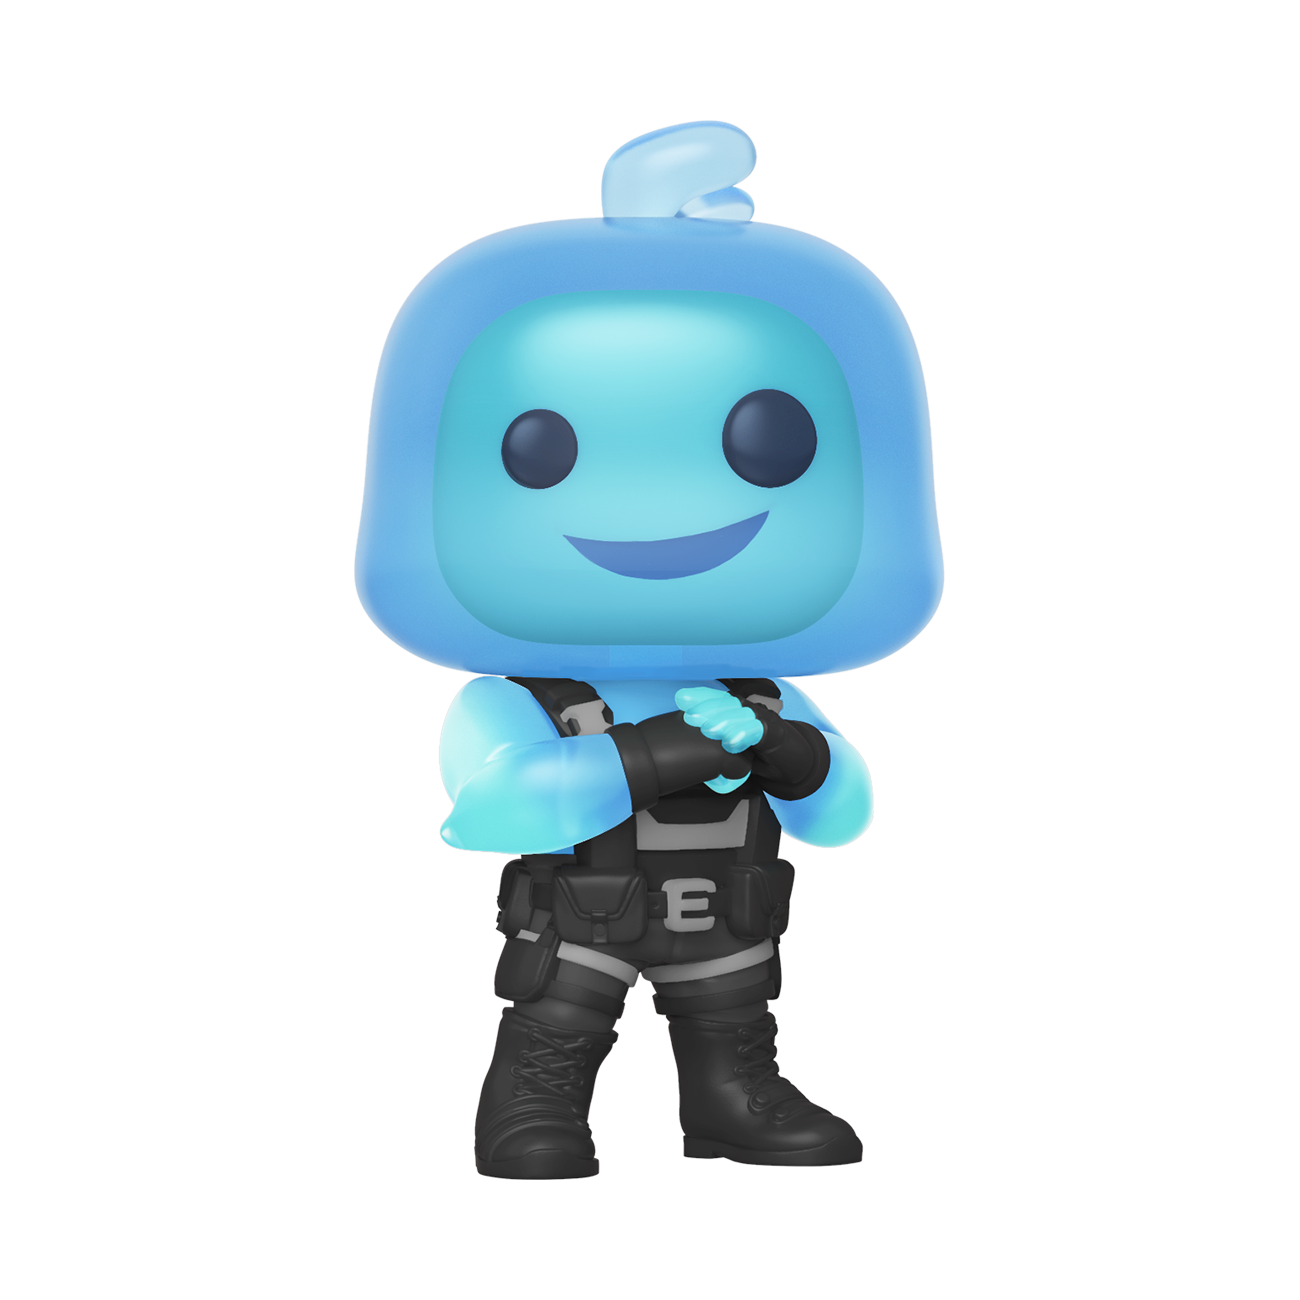 Fortnite - Rippley Summer Convention 2020 Exclusive Pop! Vinyl Figure